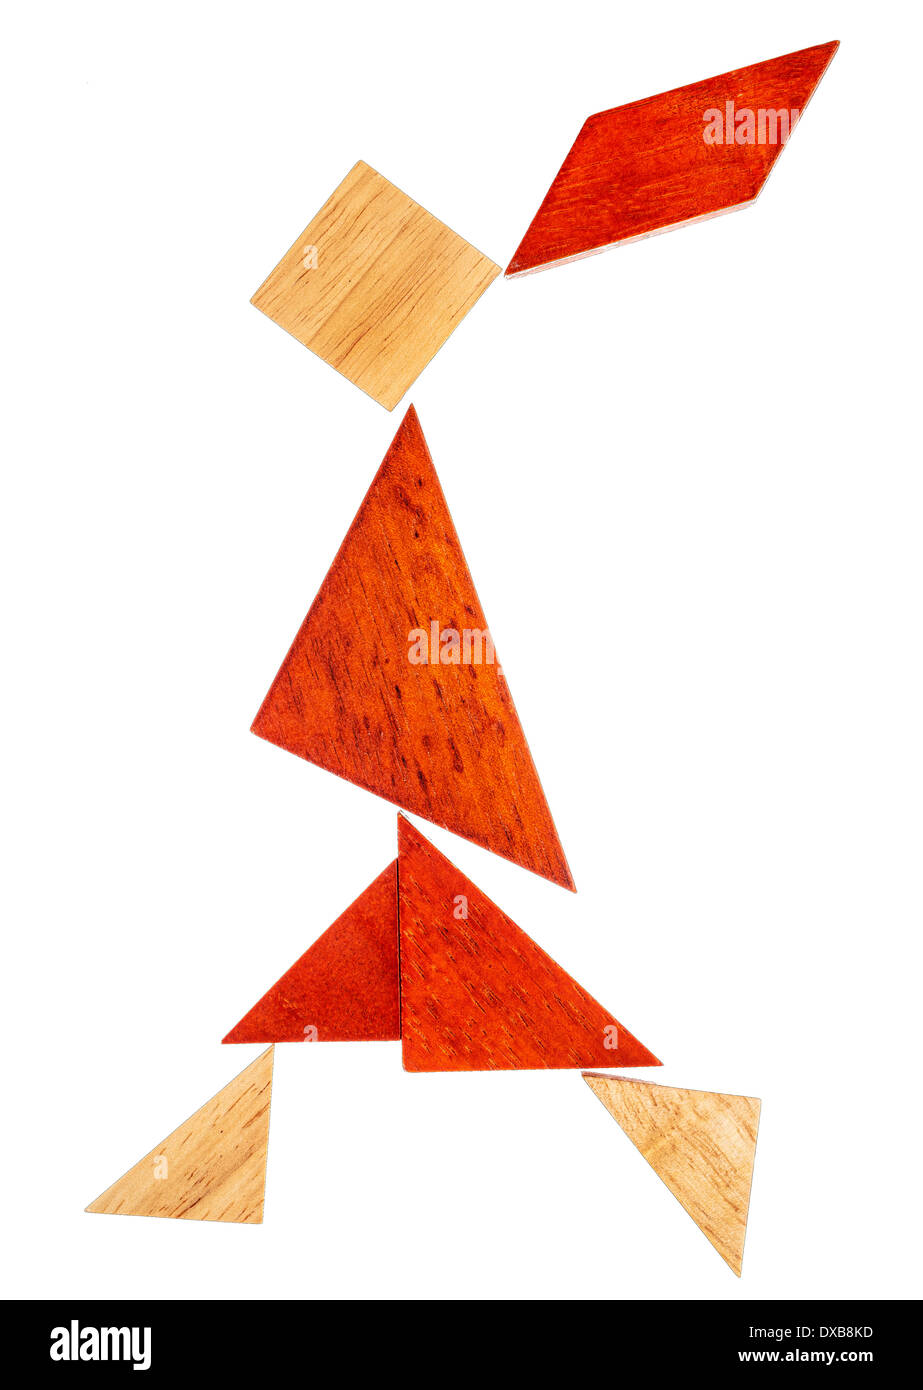 abstract figure of a walking or running girl built from seven tangram wooden pieces, a traditional Chinese puzzle game - Stock Image